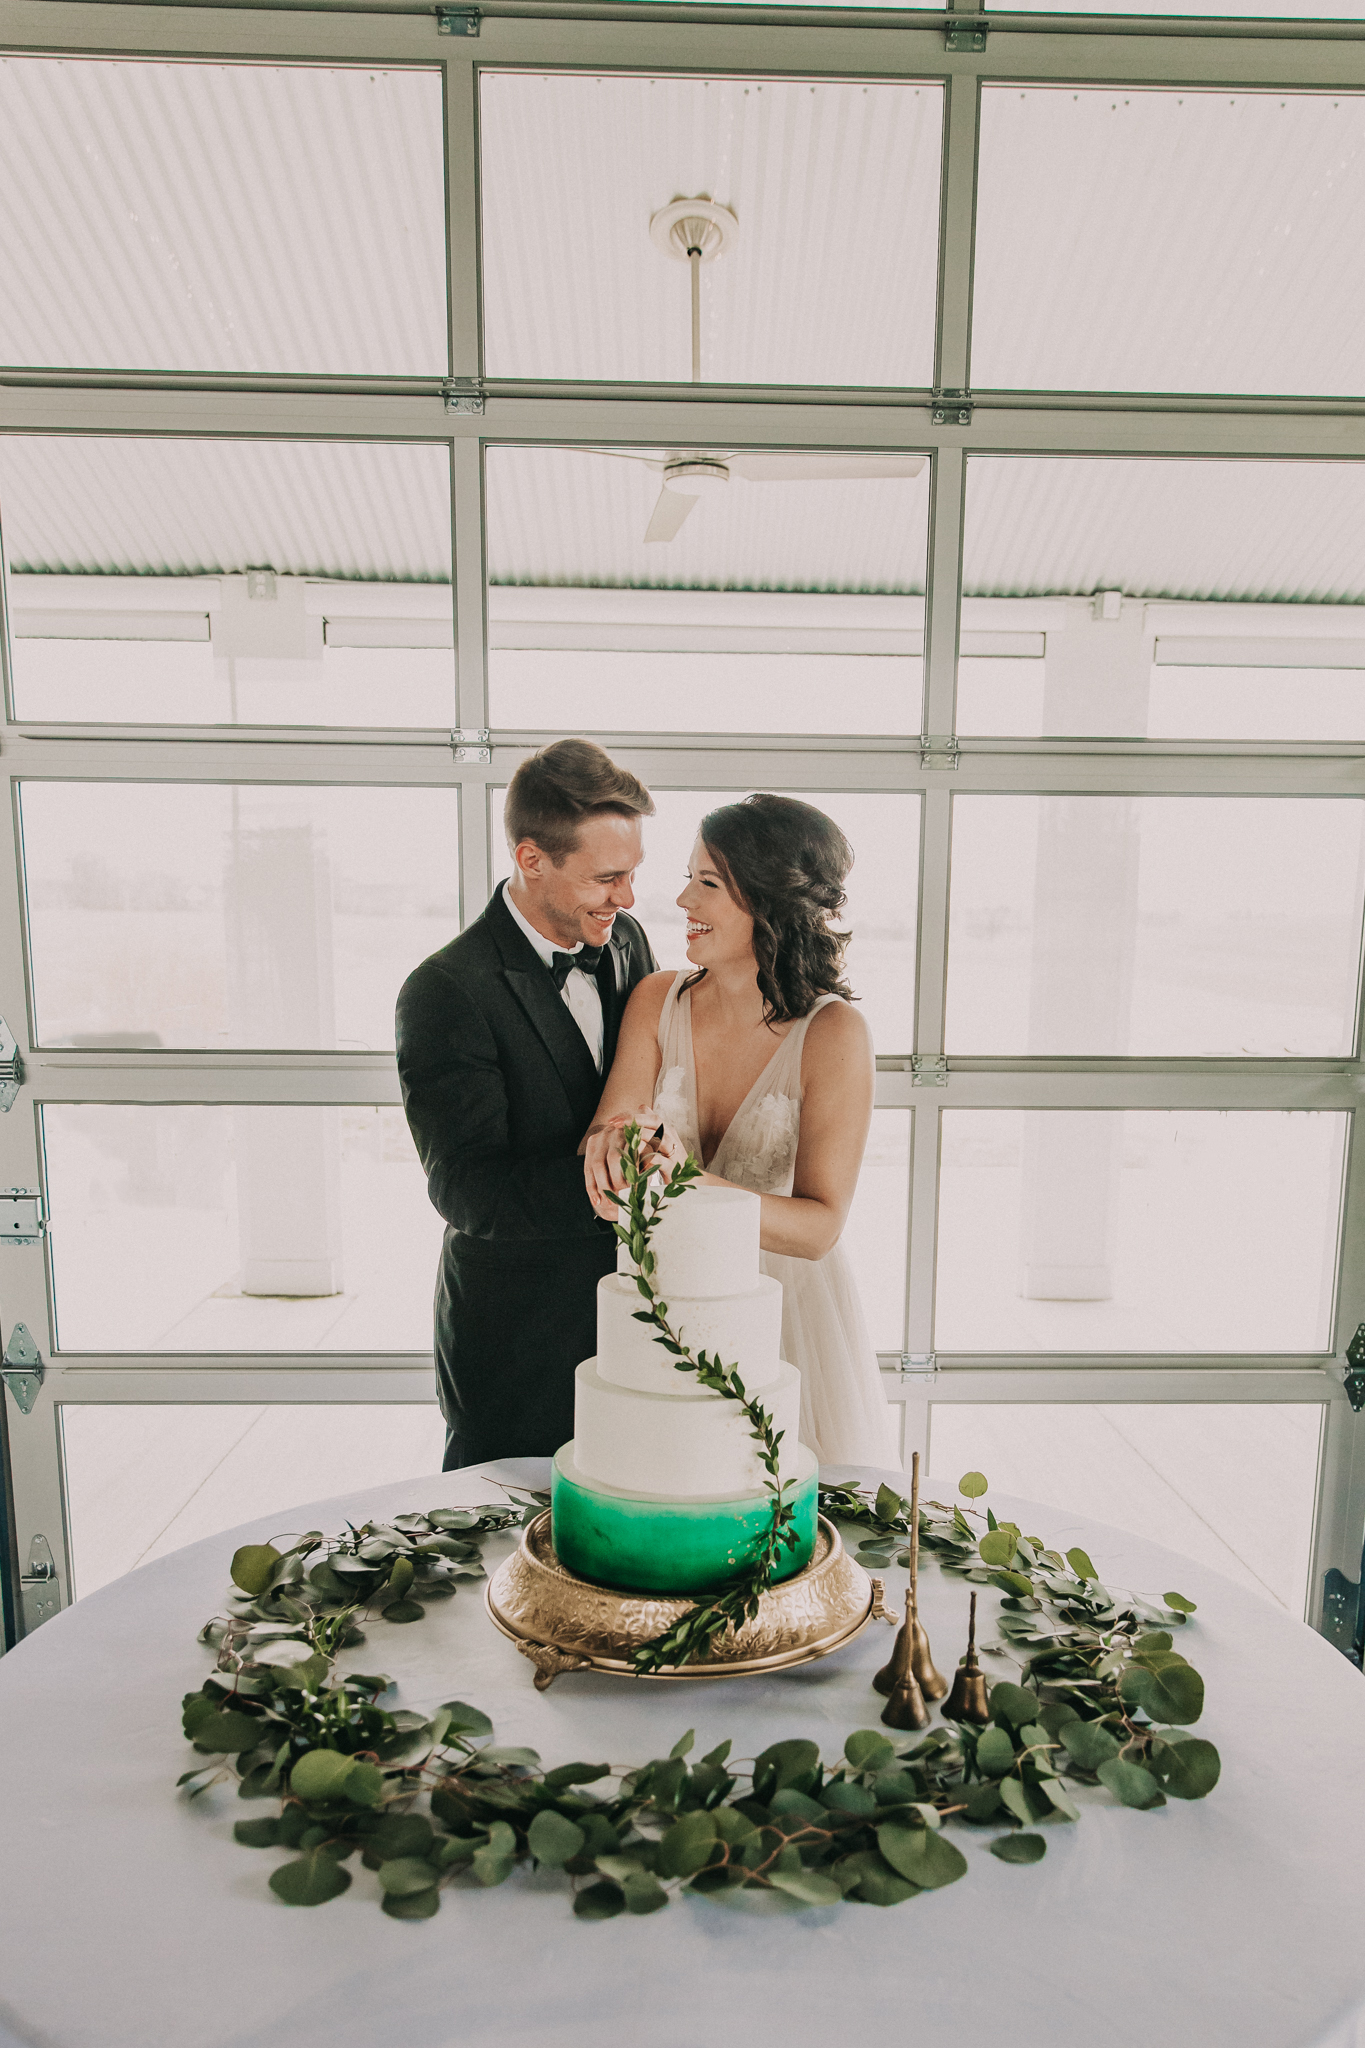 Shades of Green Legacy Styled Shoot by Music City Events and Billie-Shaye Style featured on Nashville Bride Guide